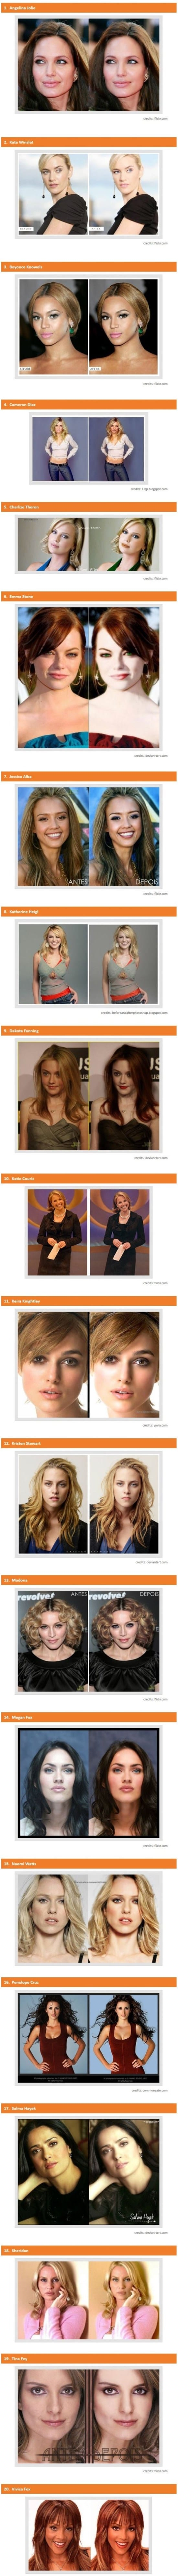 20-female-celebrities-before-and-after-photoshop